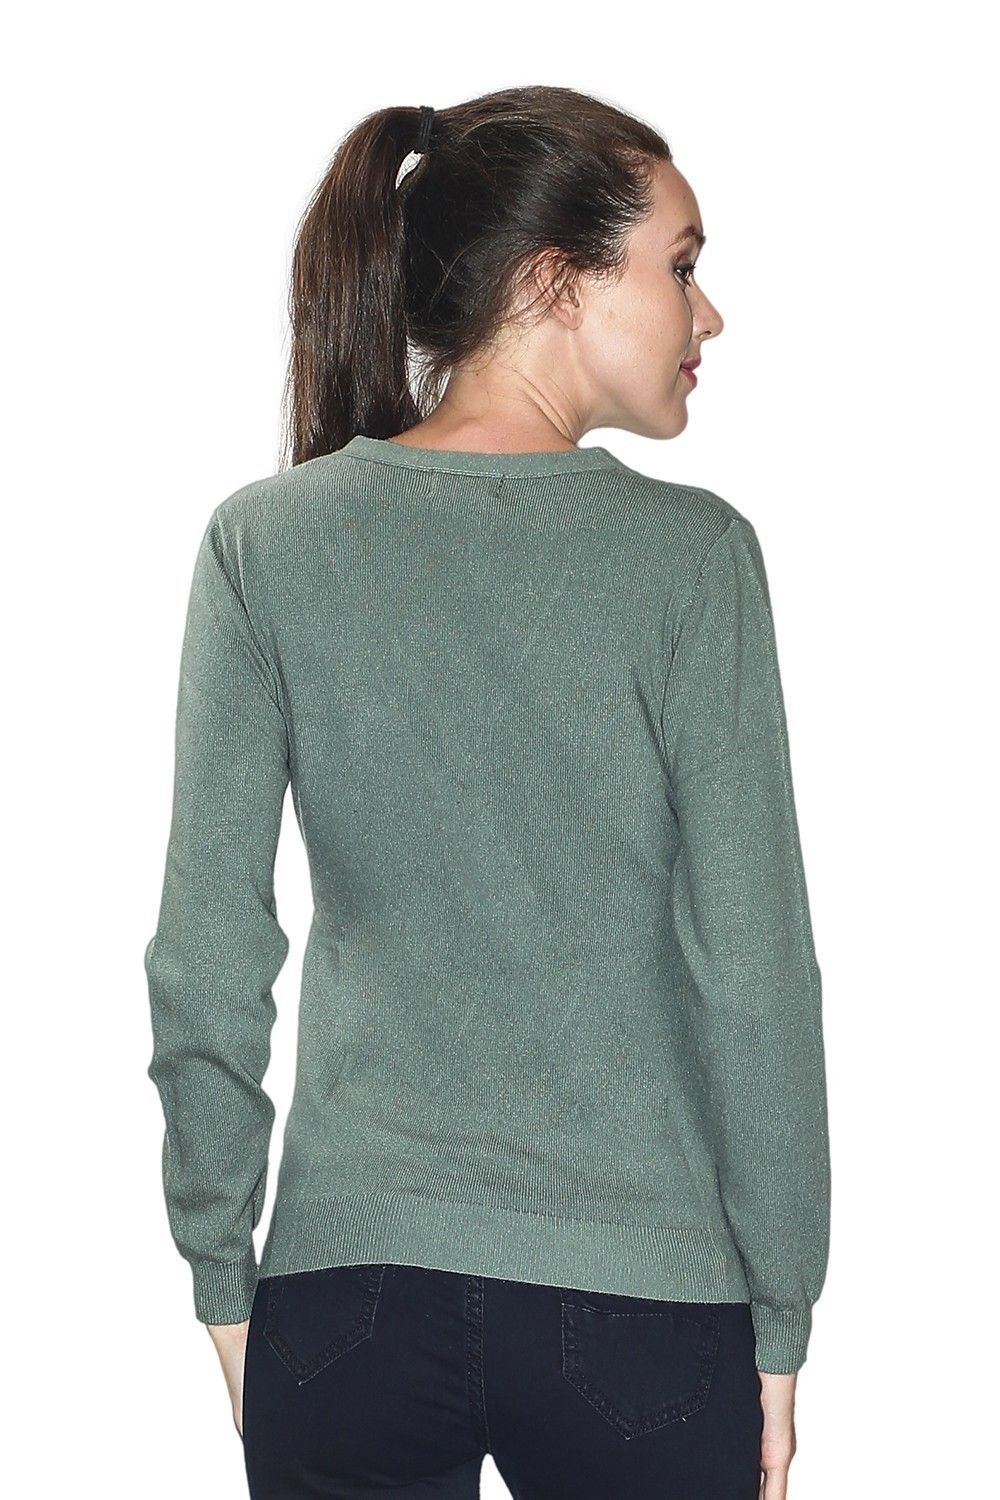 C&JO V-neck Button Detail Sweater in Green